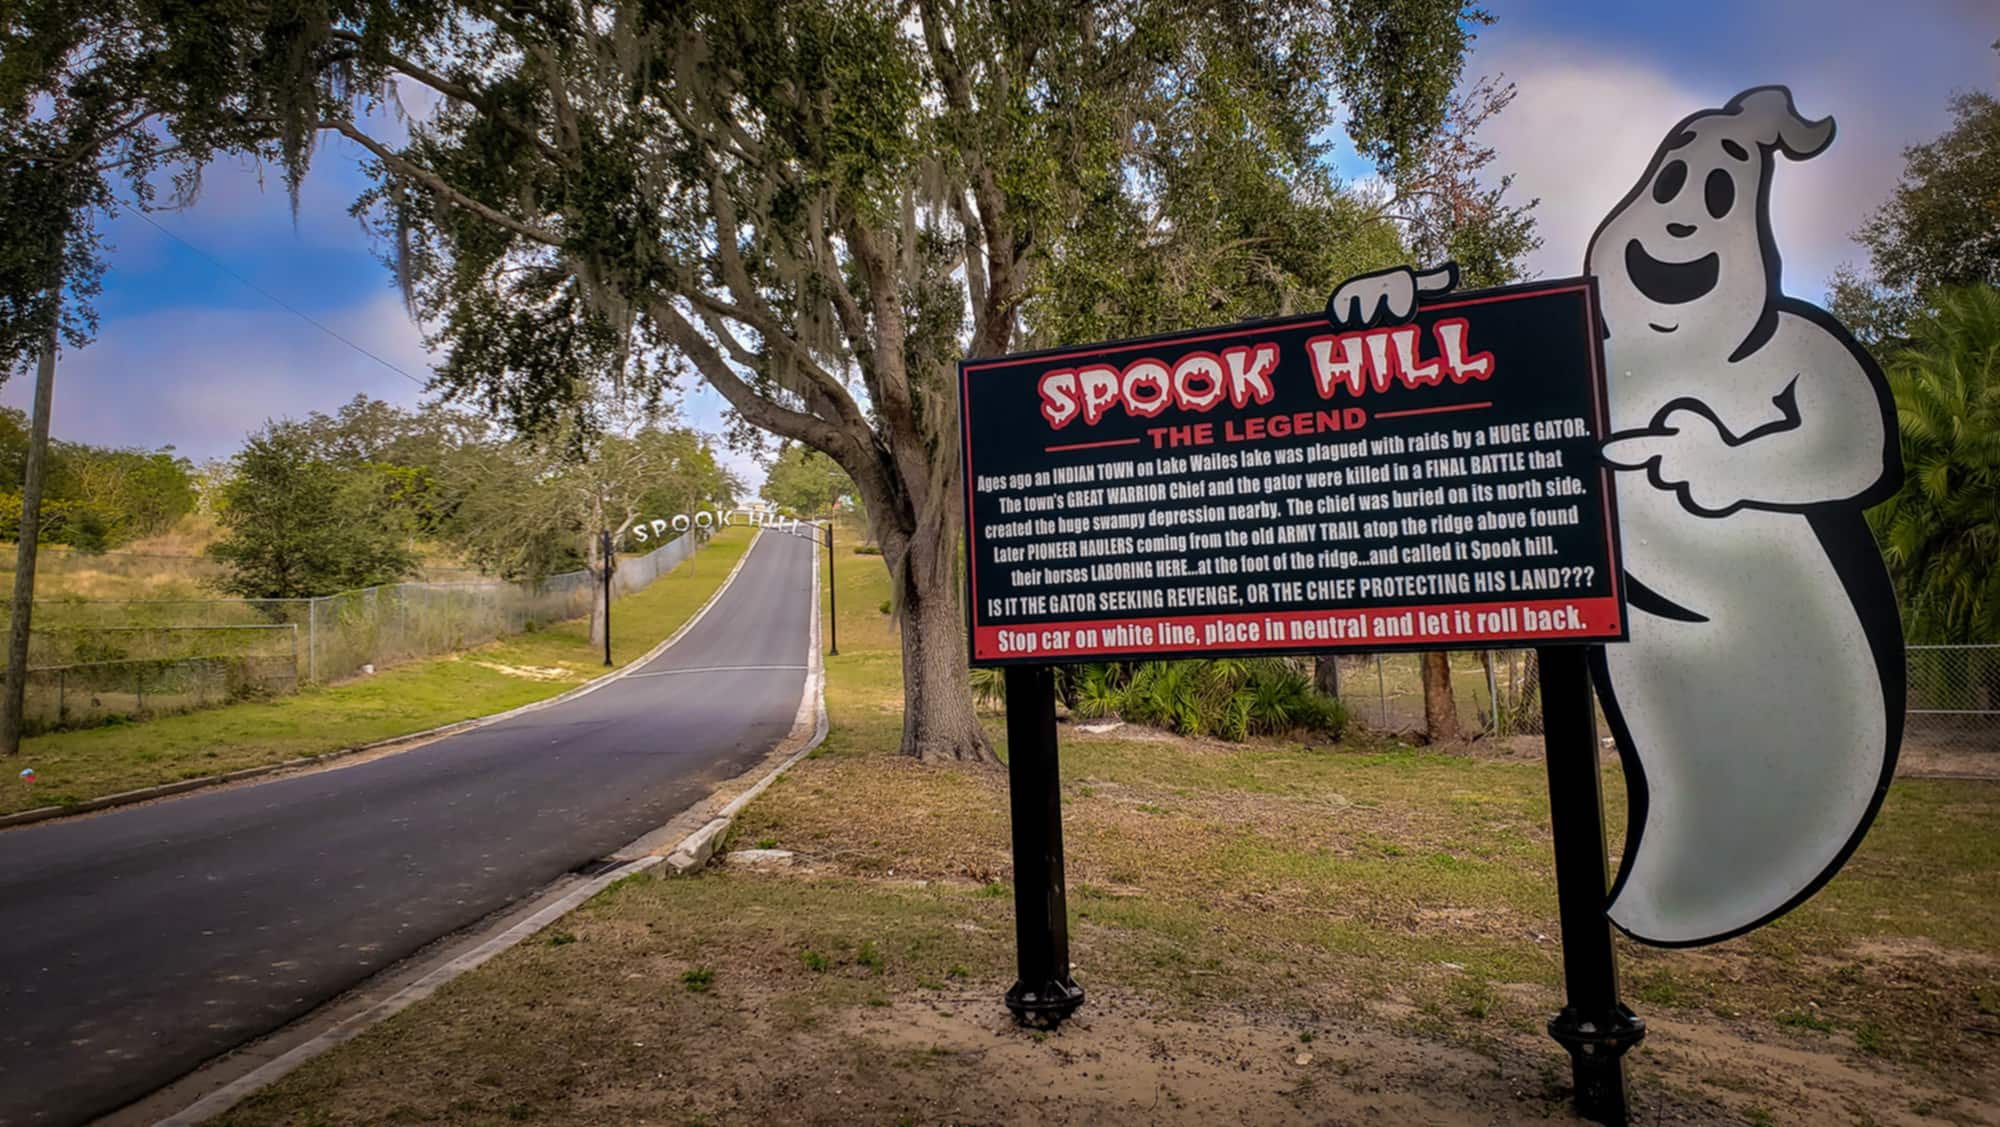 Road and sign explaining history of Spook Hill in Lake Wales, FL